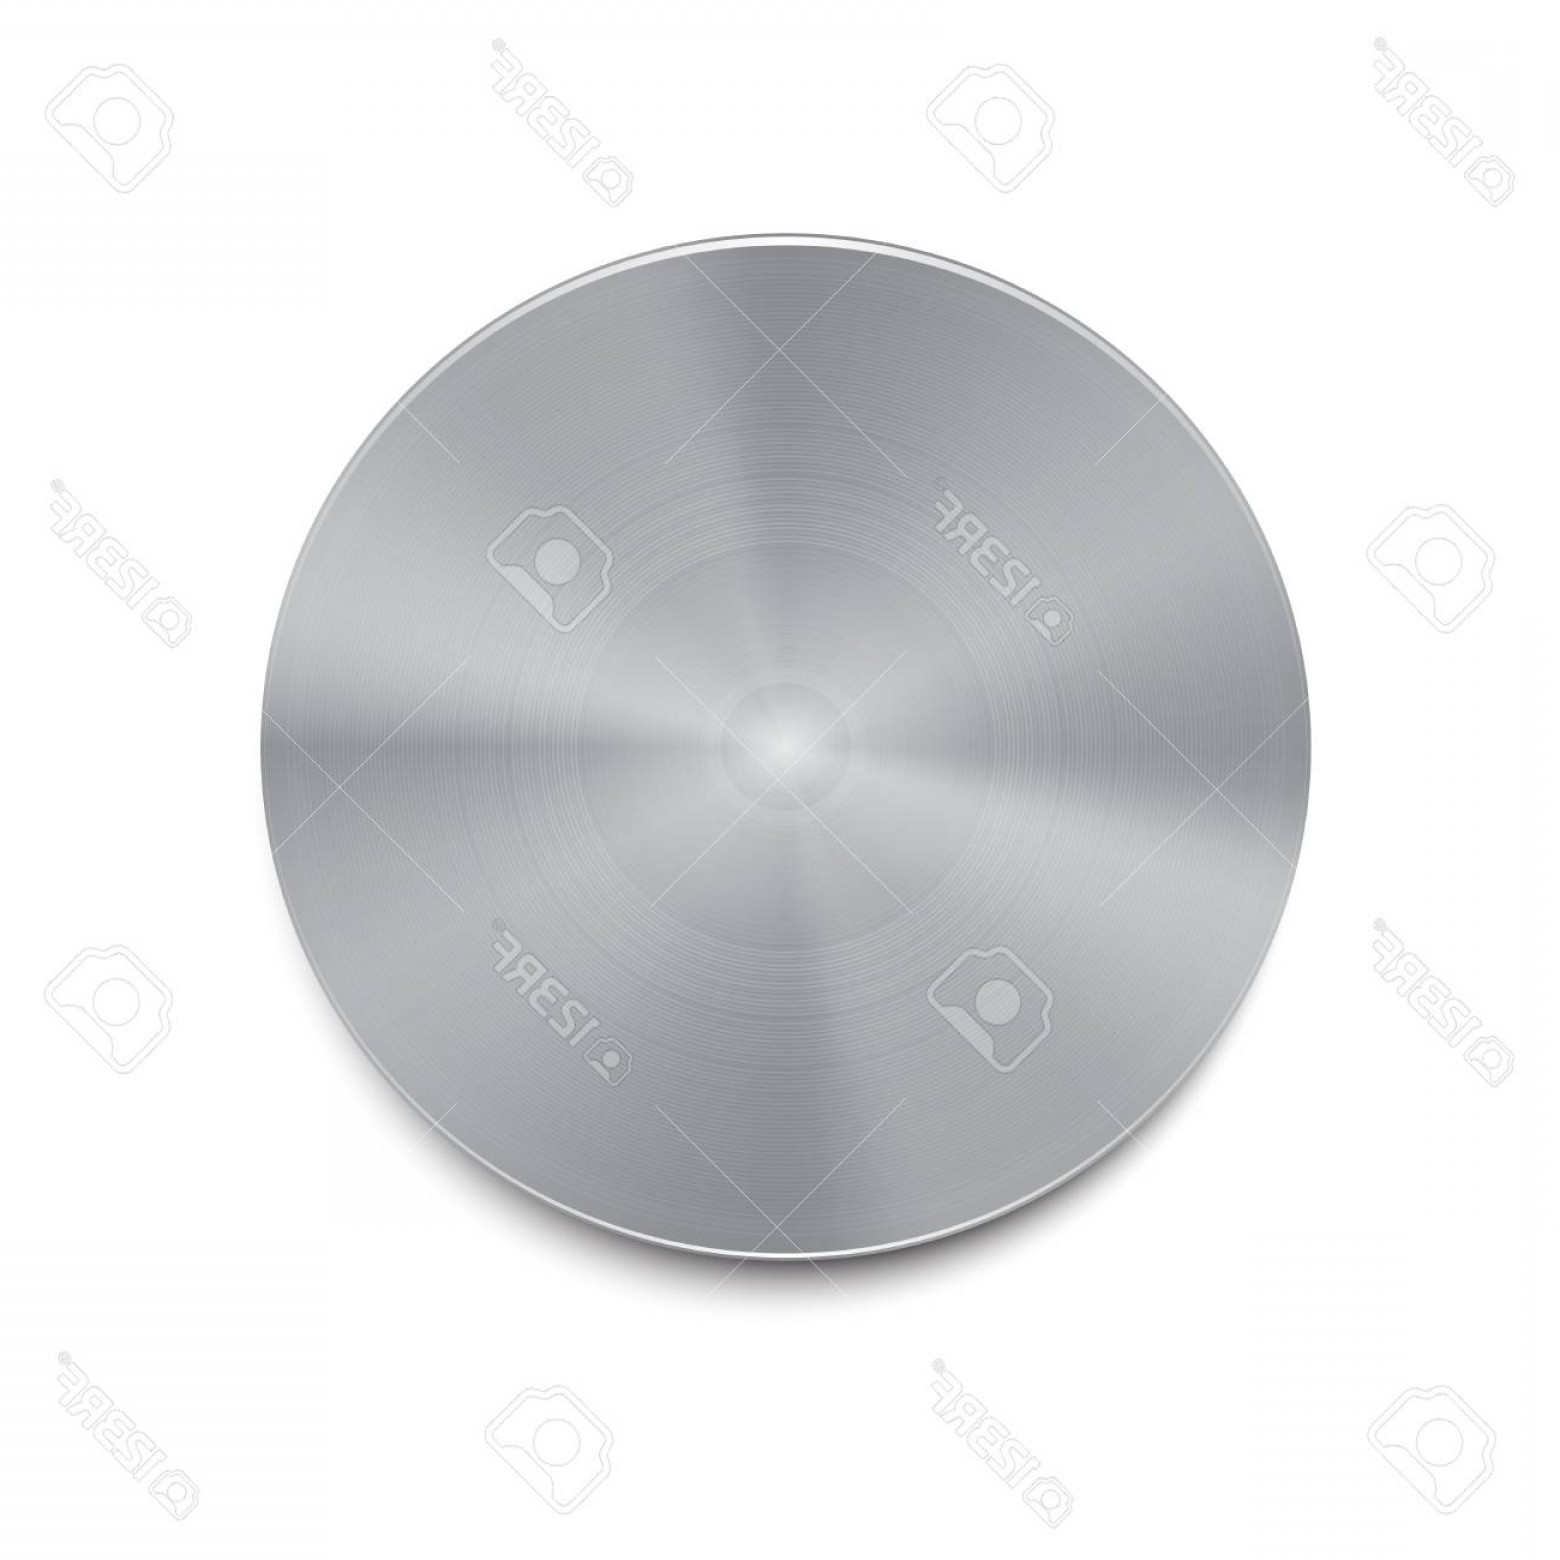 Metal Button Vector: Photostock Vector Metal Isolated Button Vector Illustration Silver Button